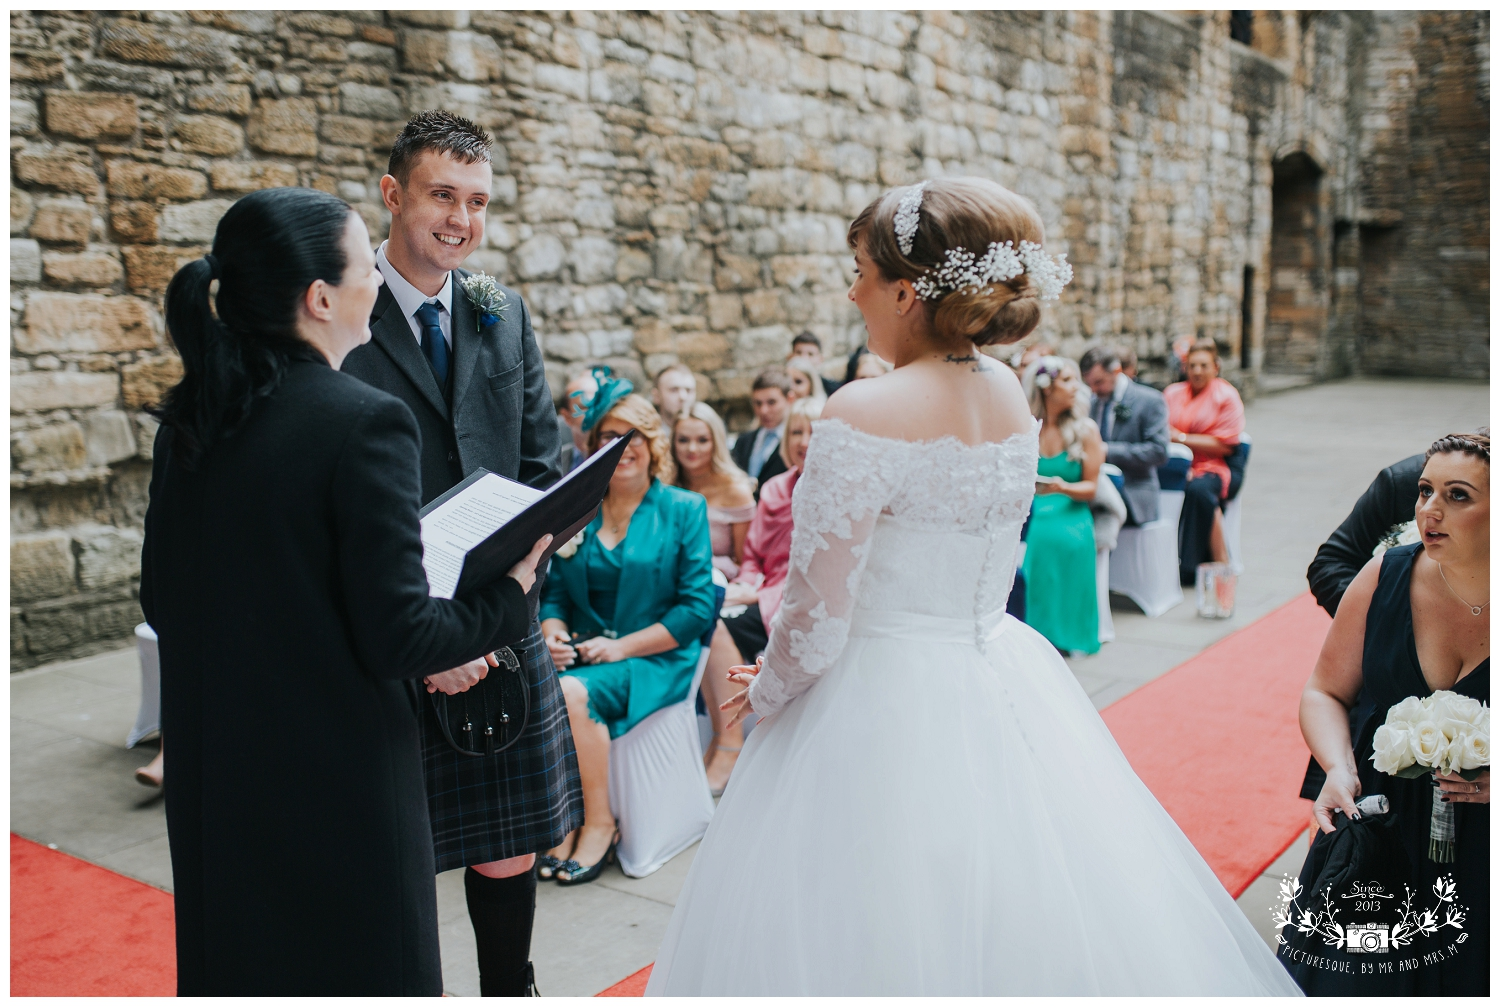 Linlithgow Palace and Beancross wedding_0019.jpg